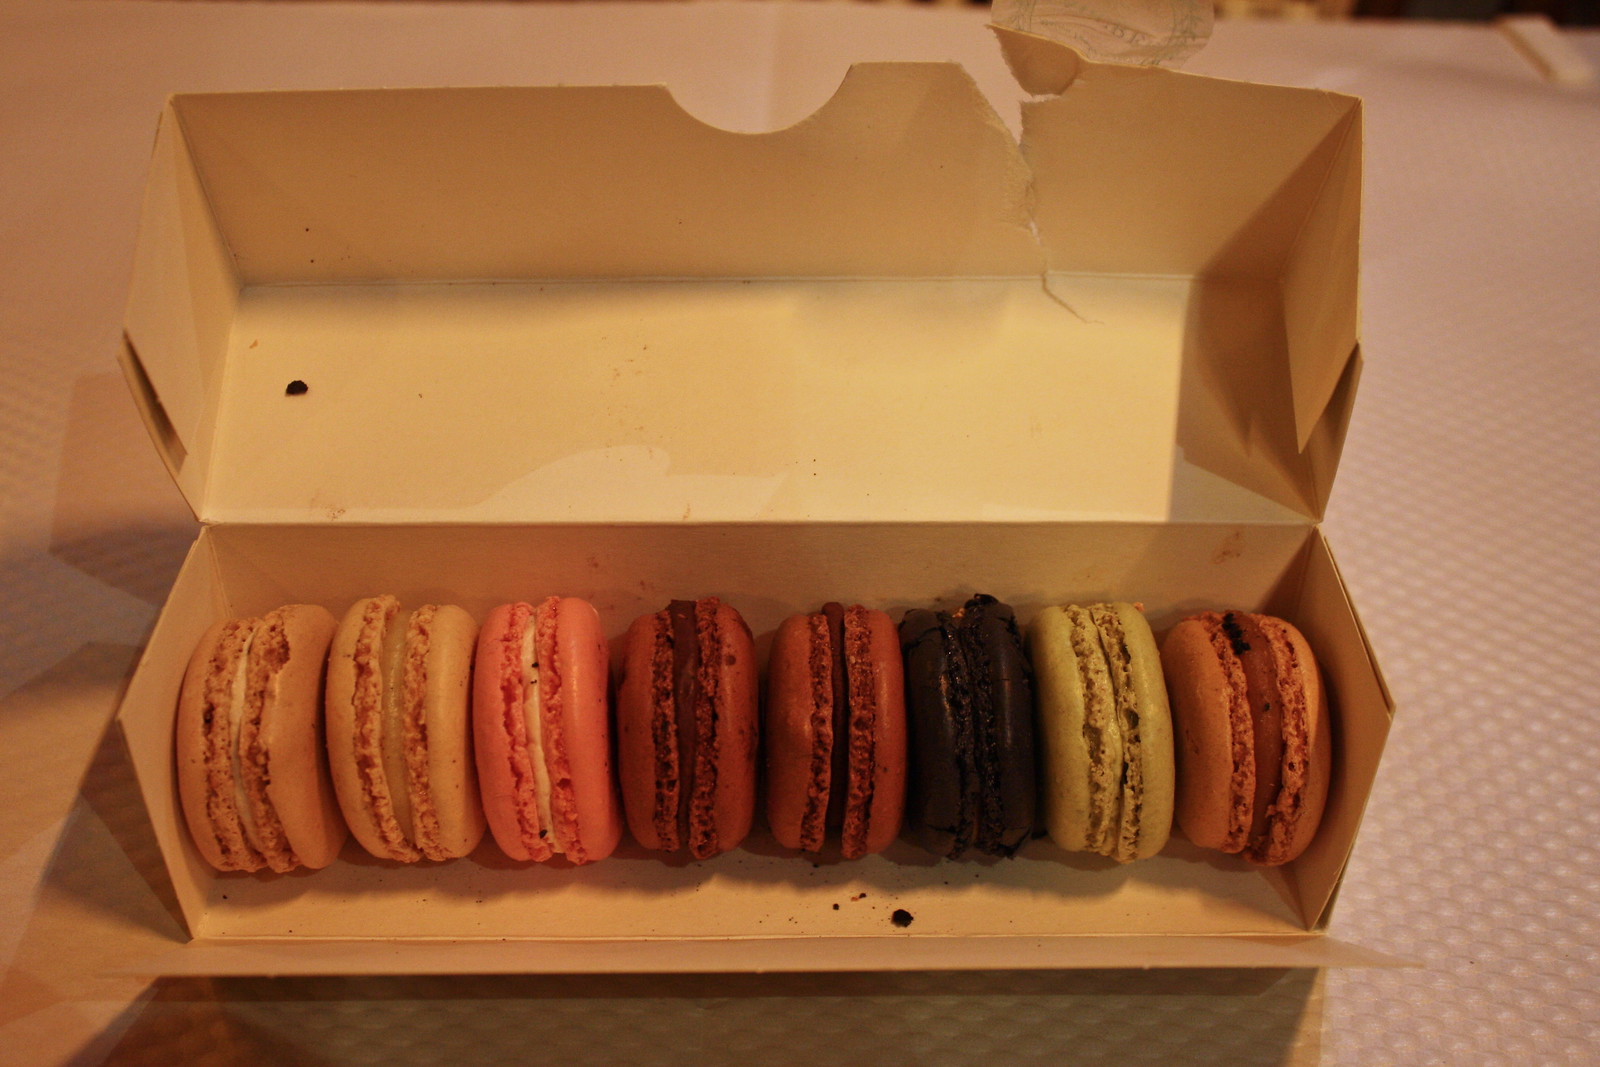 Ladurée macarons, Paris, France